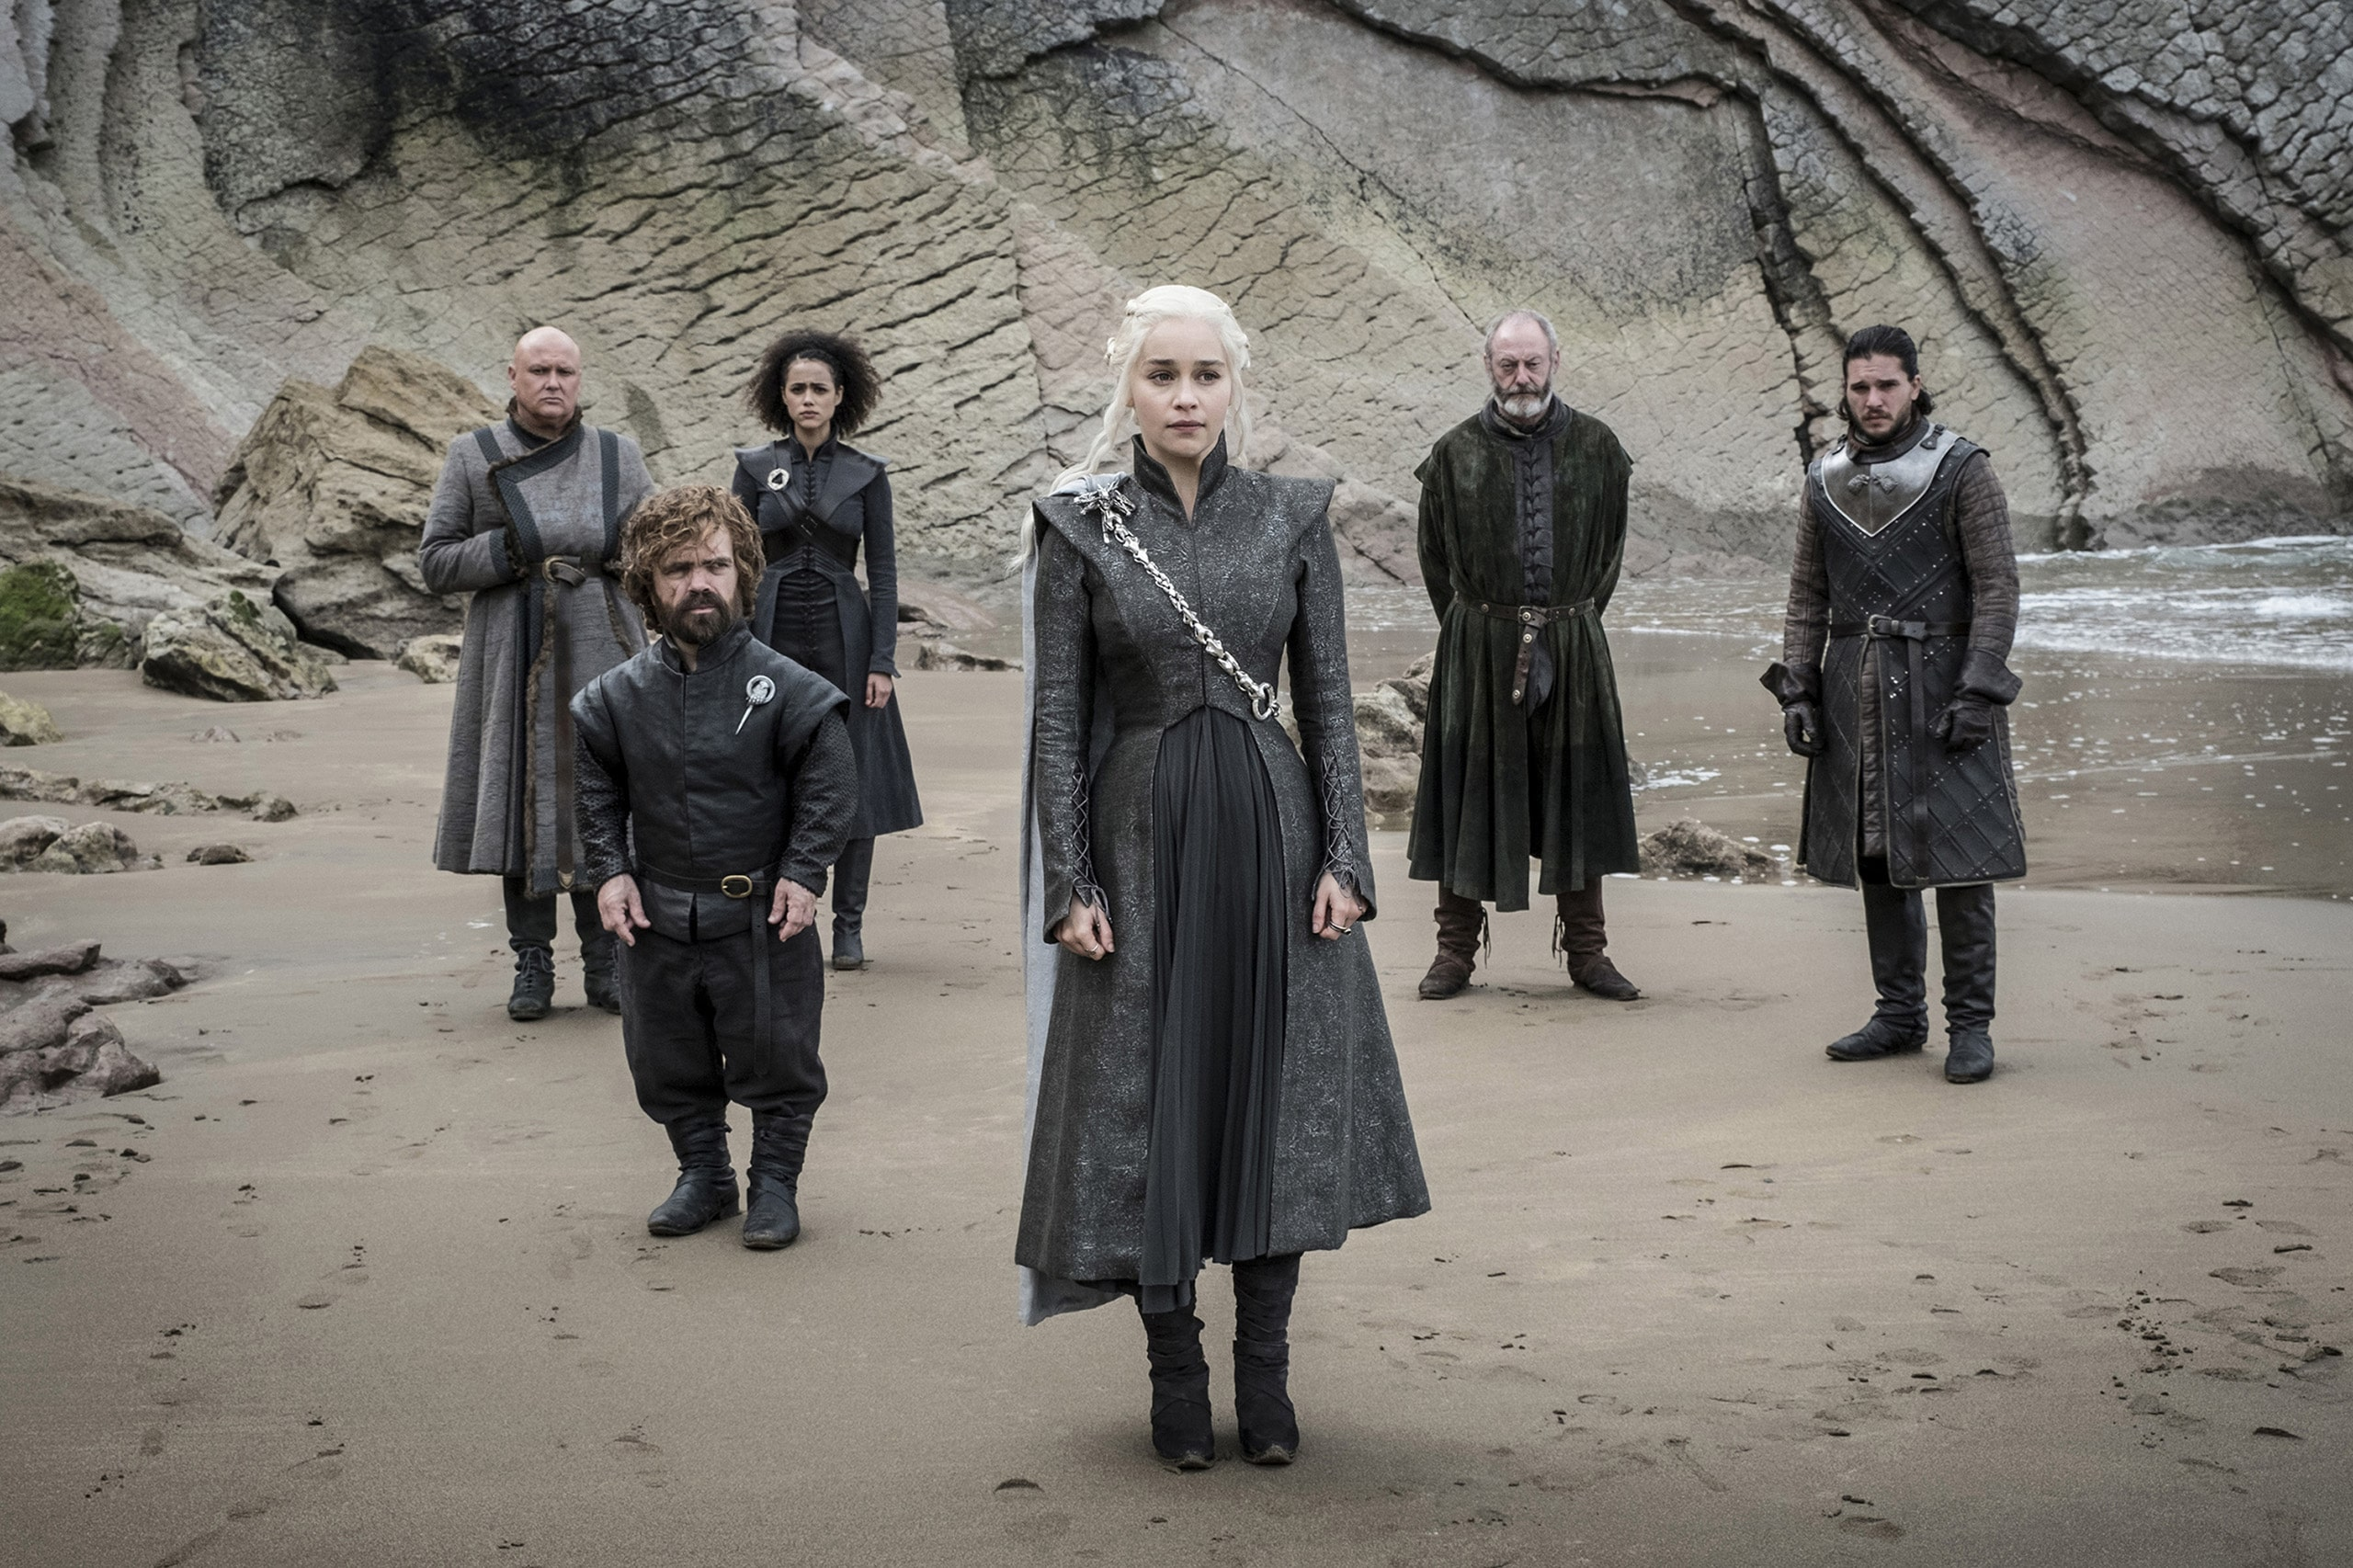 Game of Thrones and the Emmys: Should even the most popular media be criticised? 1